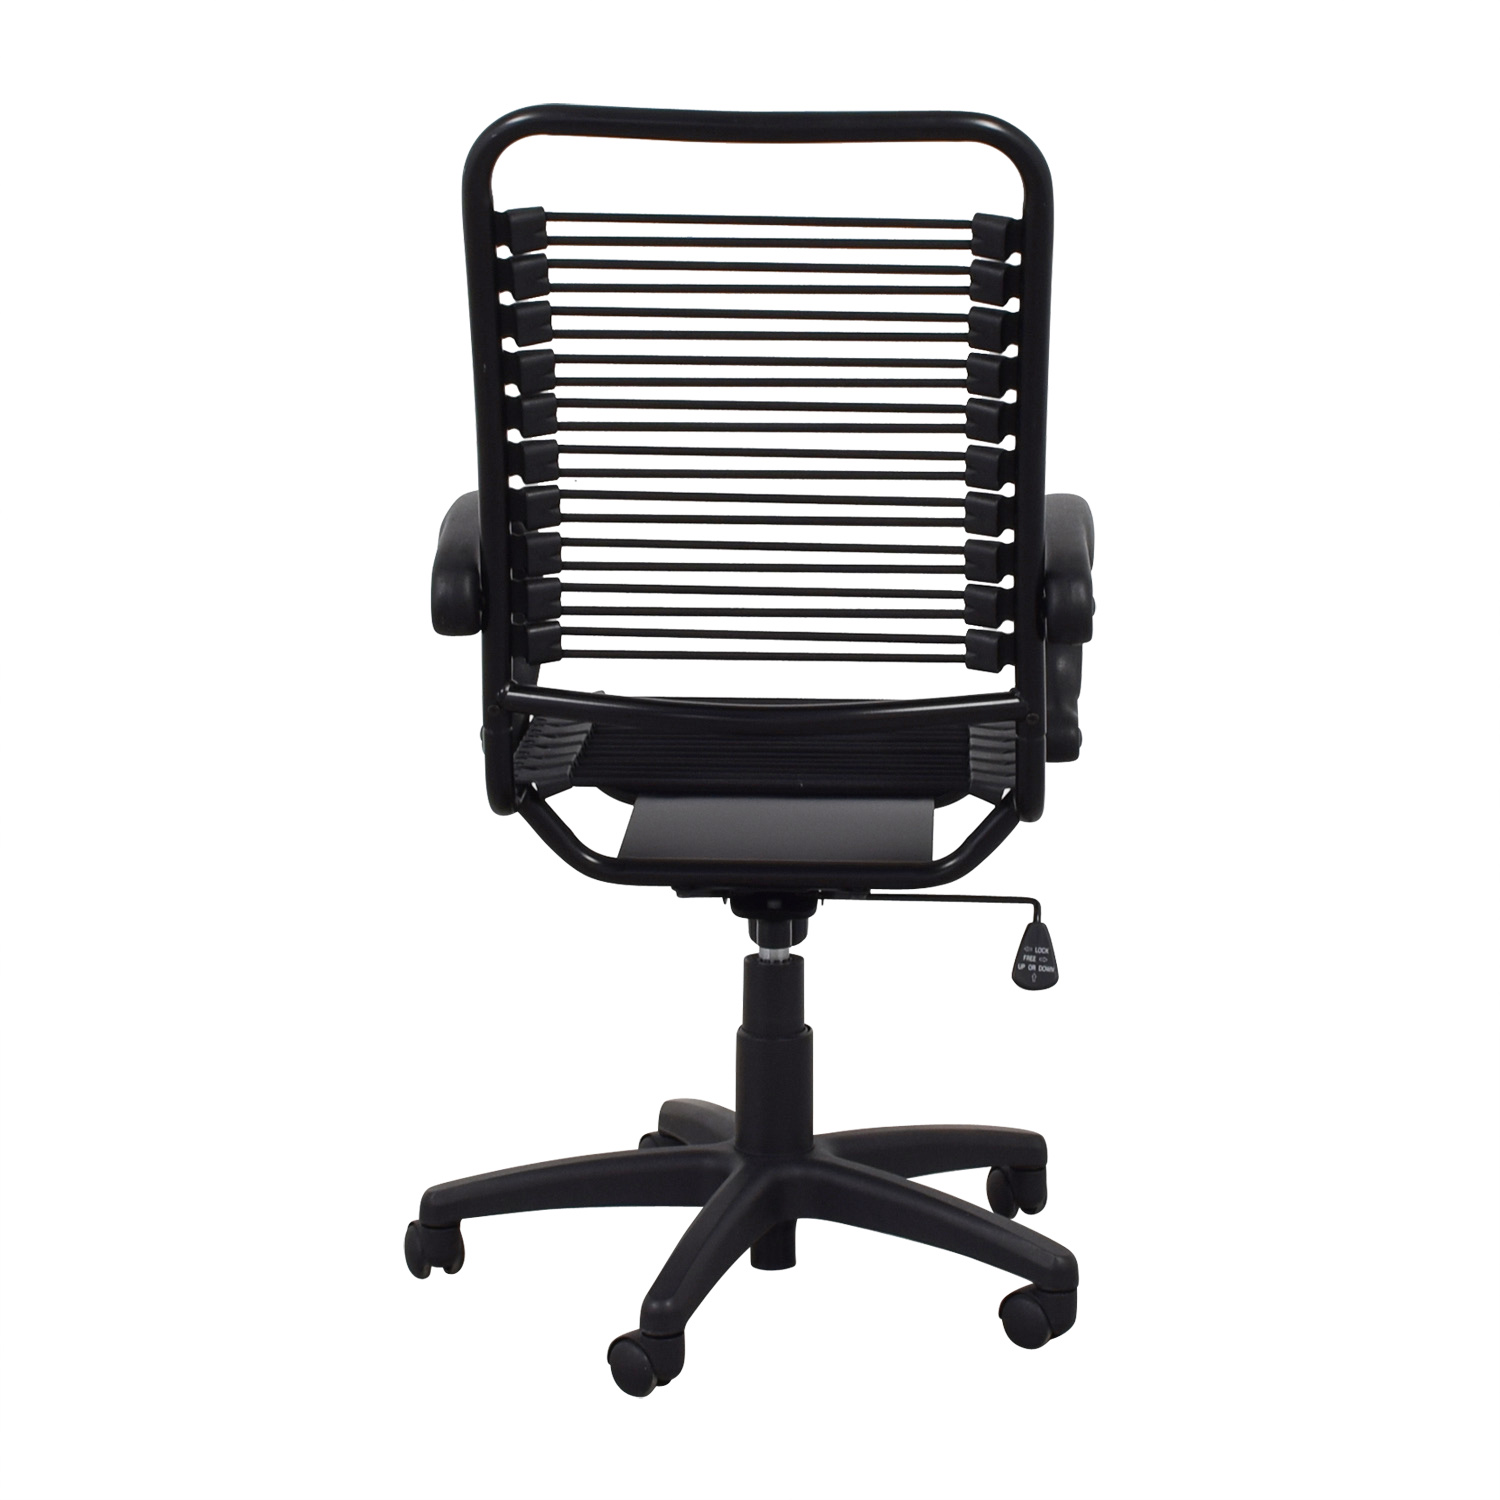 CB2 CB2 Black Studio Office Chair discount